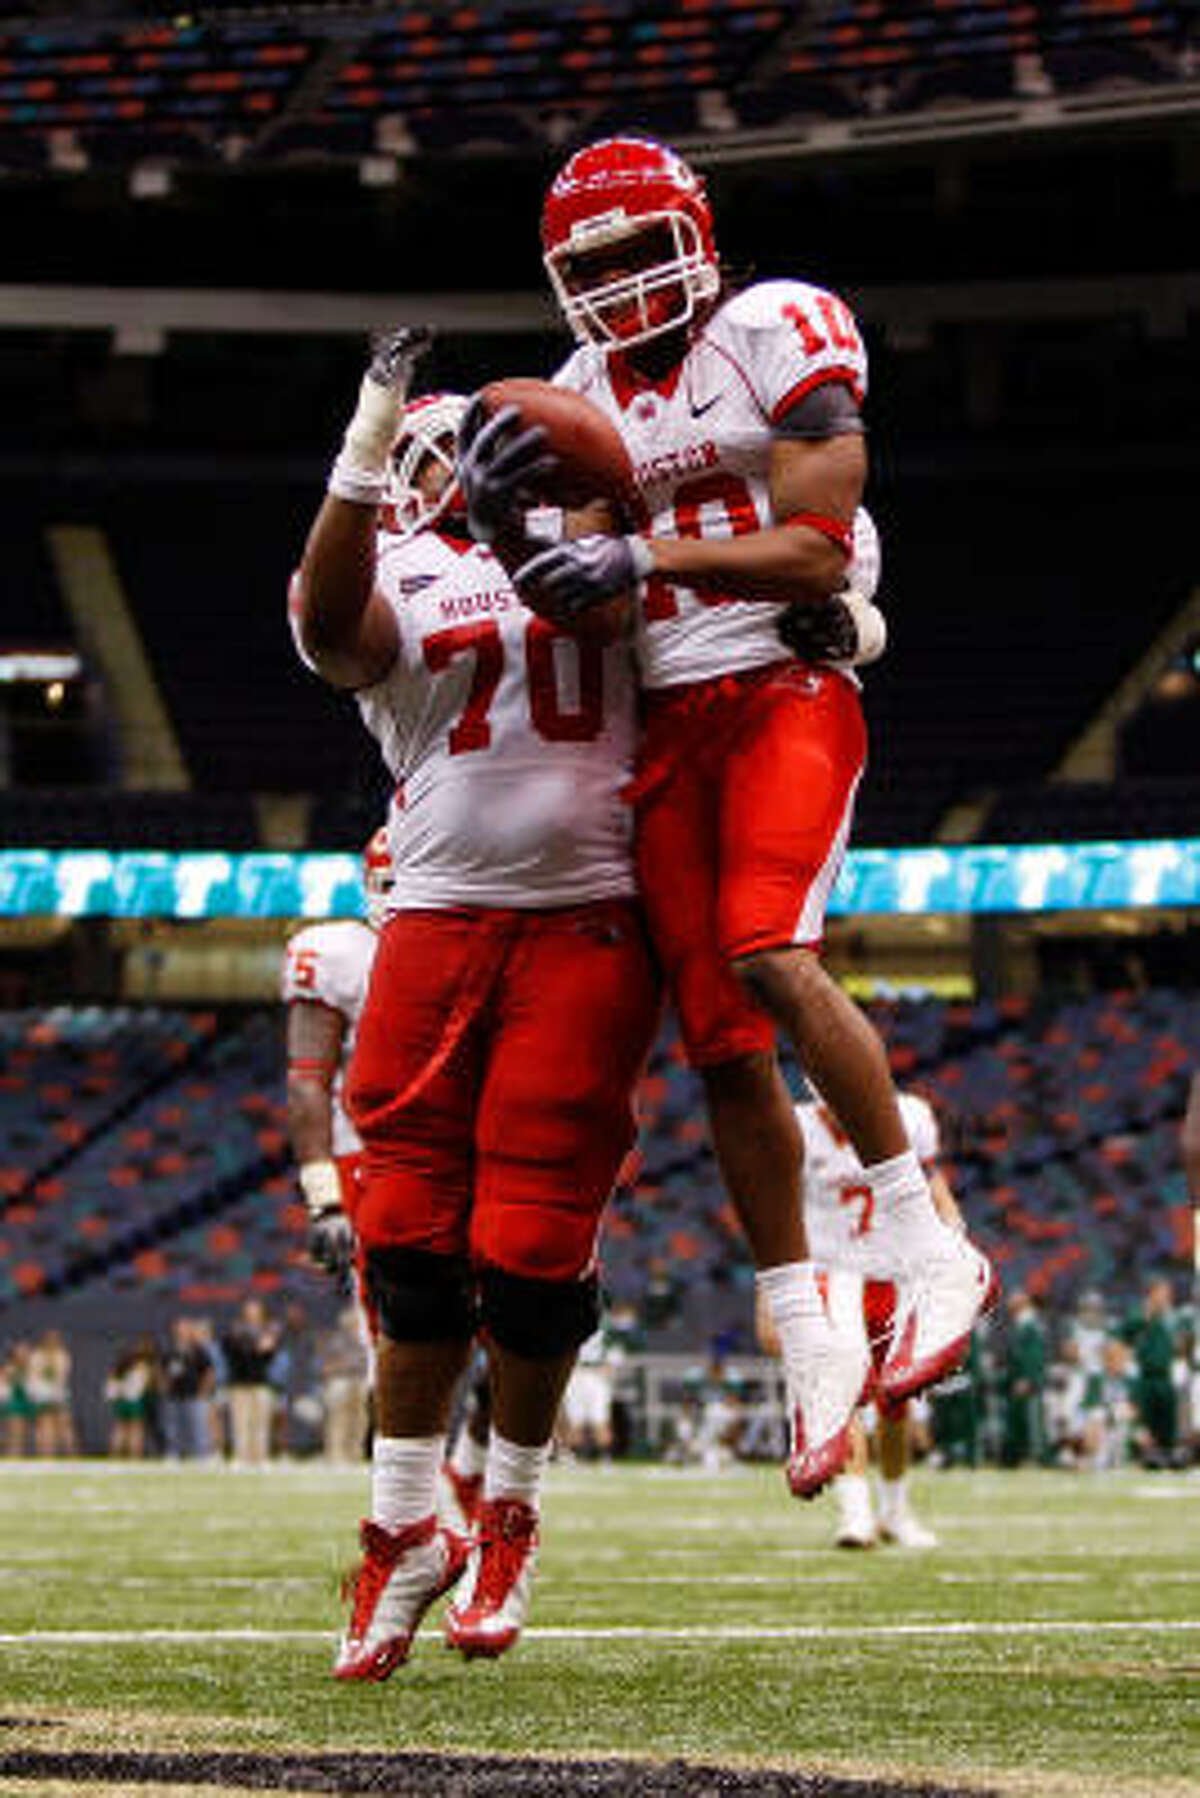 The University of Houston's L.J. Castile, right, celebrates with Chris Thompson after scoring a touchdown against Tulane during the Cougars' victory Saturday at the Louisiana Superdome in New Orleans.